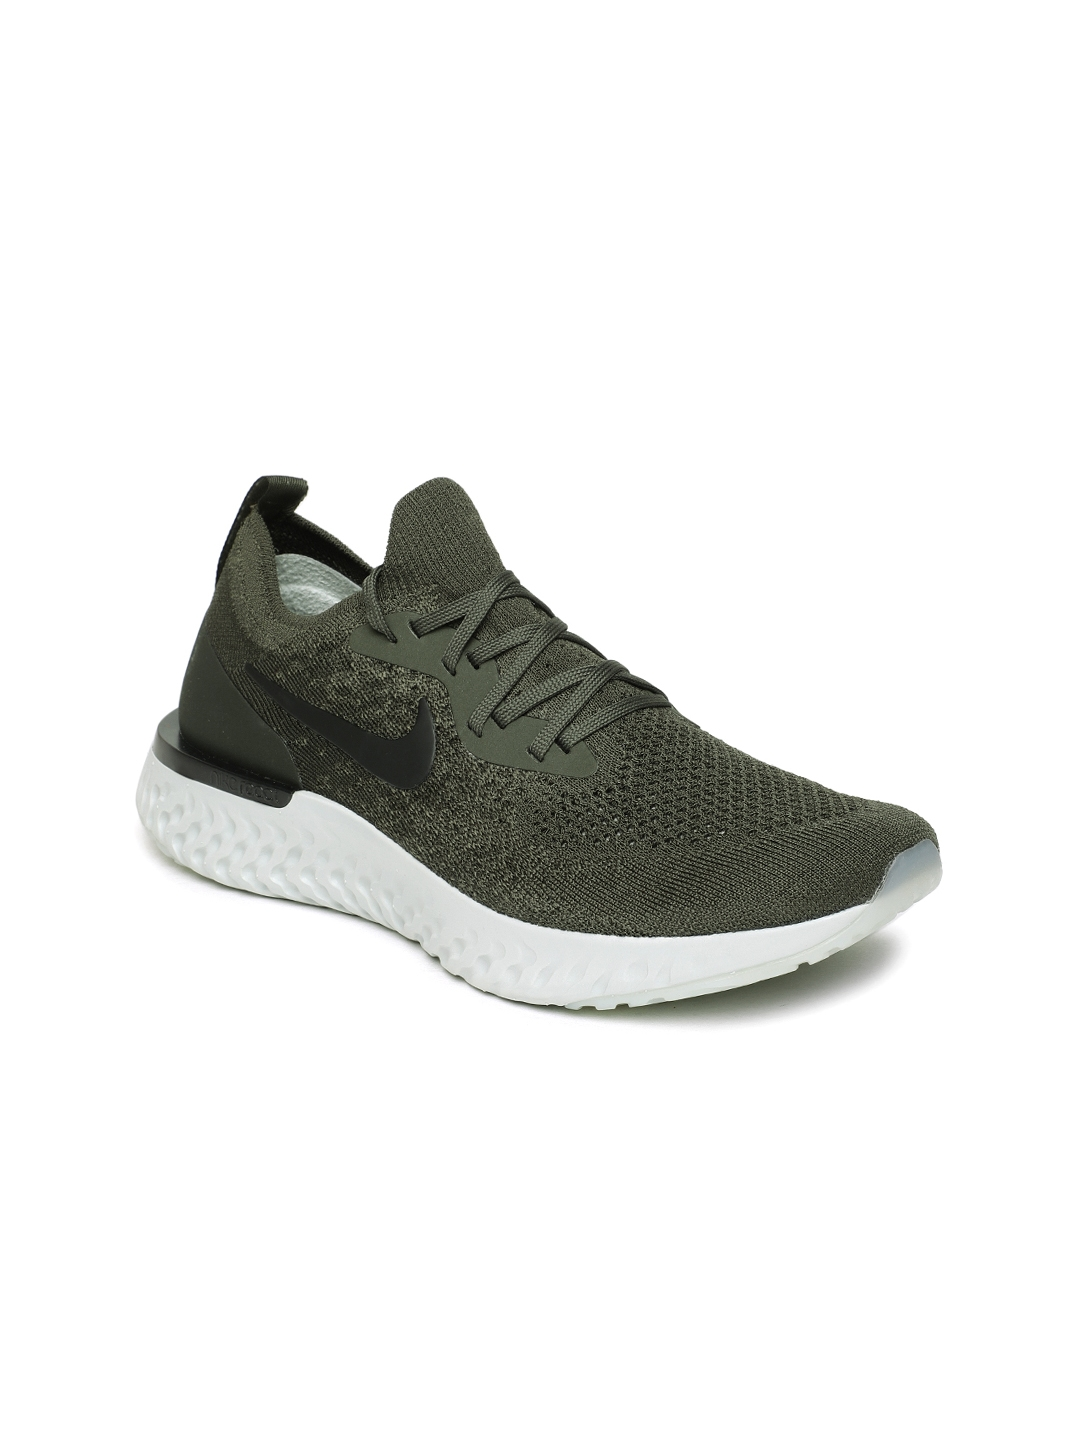 8582dc29c8948 Buy Nike Women Olive Green Epic React Flyknit Running Shoes - Sports ...